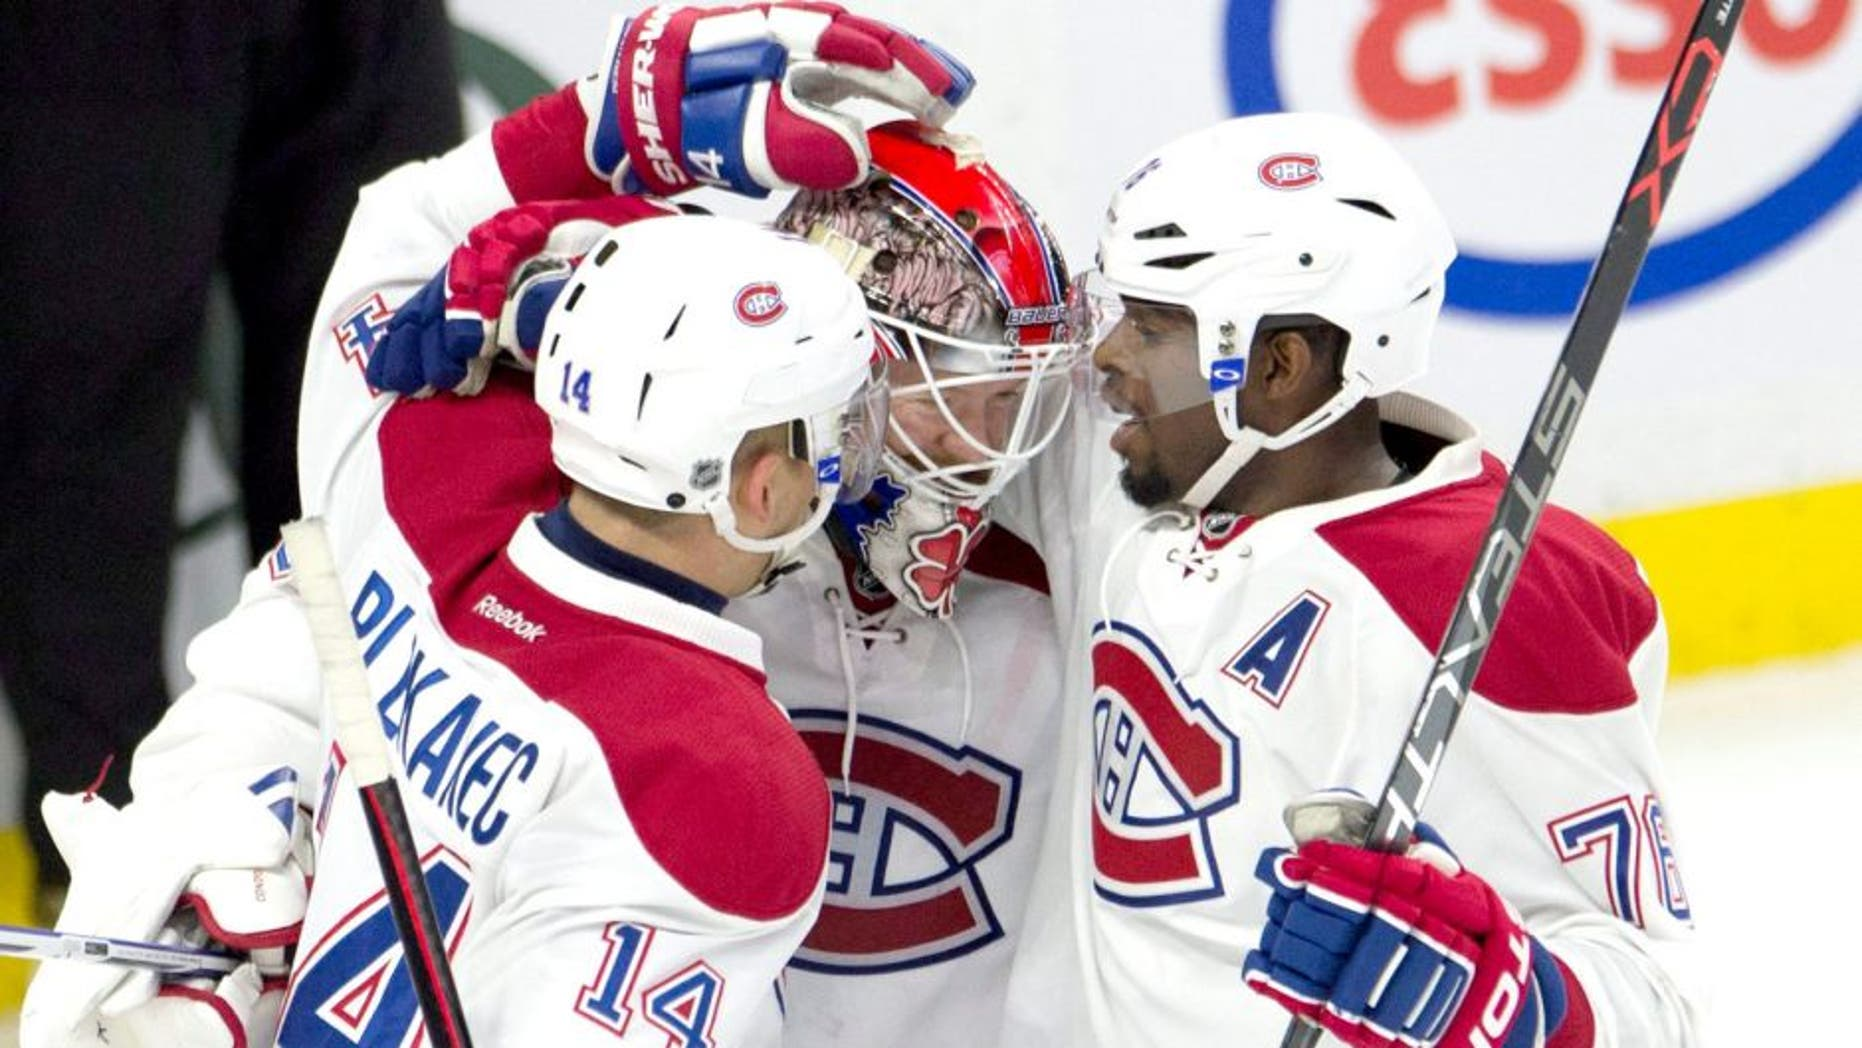 Montreal Canadiens defenseman P.K. Subban, right, and center Tomas Plekanec congratulate goalie Mike Condon as the Canadiens defeat the Ottawa Senators in an NHL hockey game, Sunday, Oct. 11, 2015 in Ottawa, Ontario. (Adrian Wyld/The Canadian Press via AP) MANDATORY CREDIT